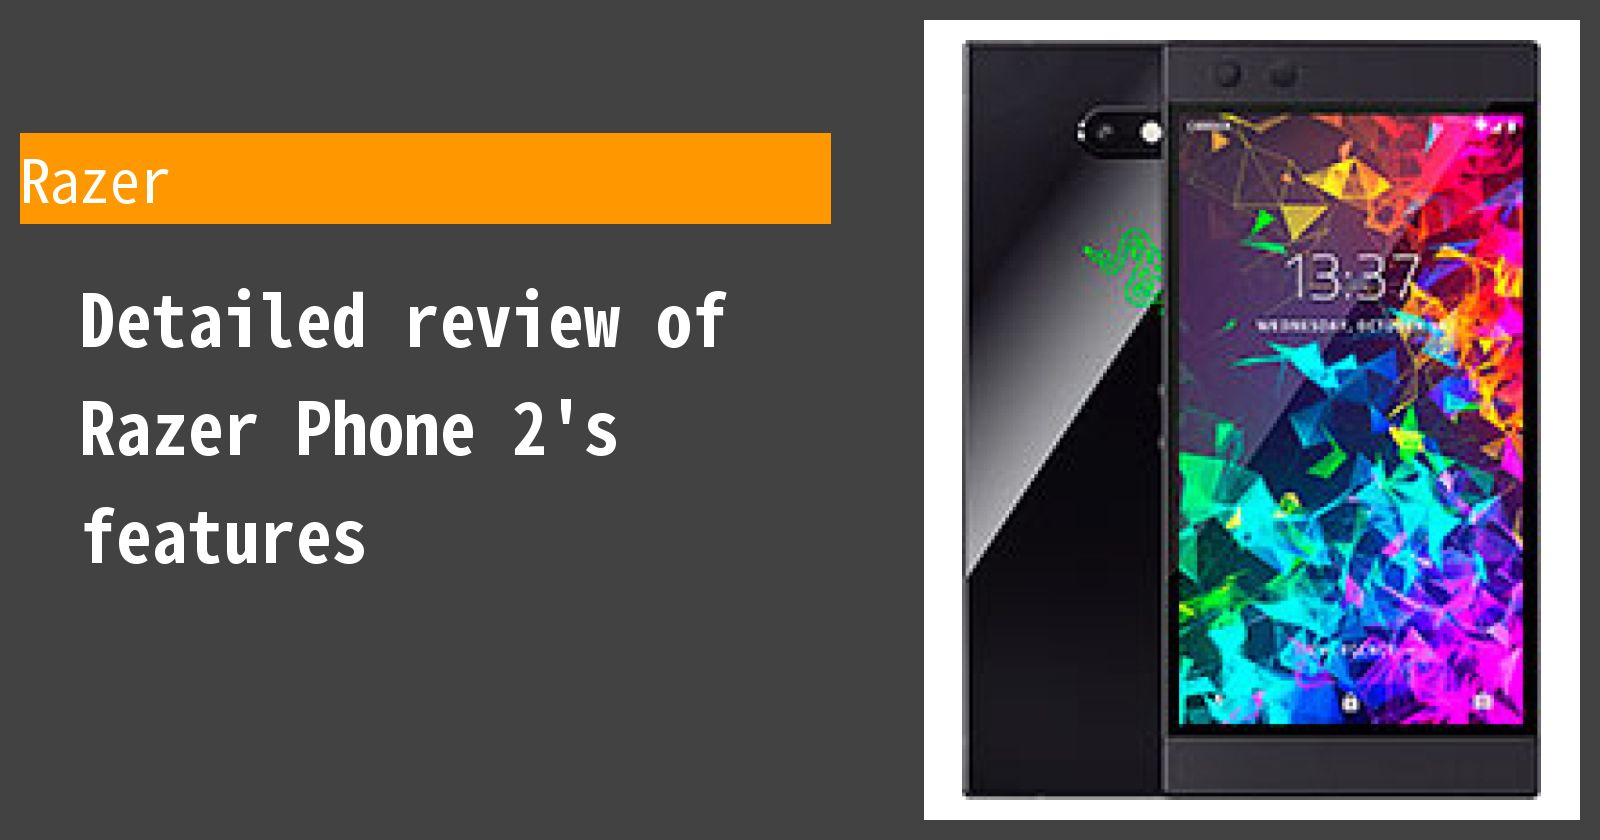 Detailed review of Razer Phone 2's features